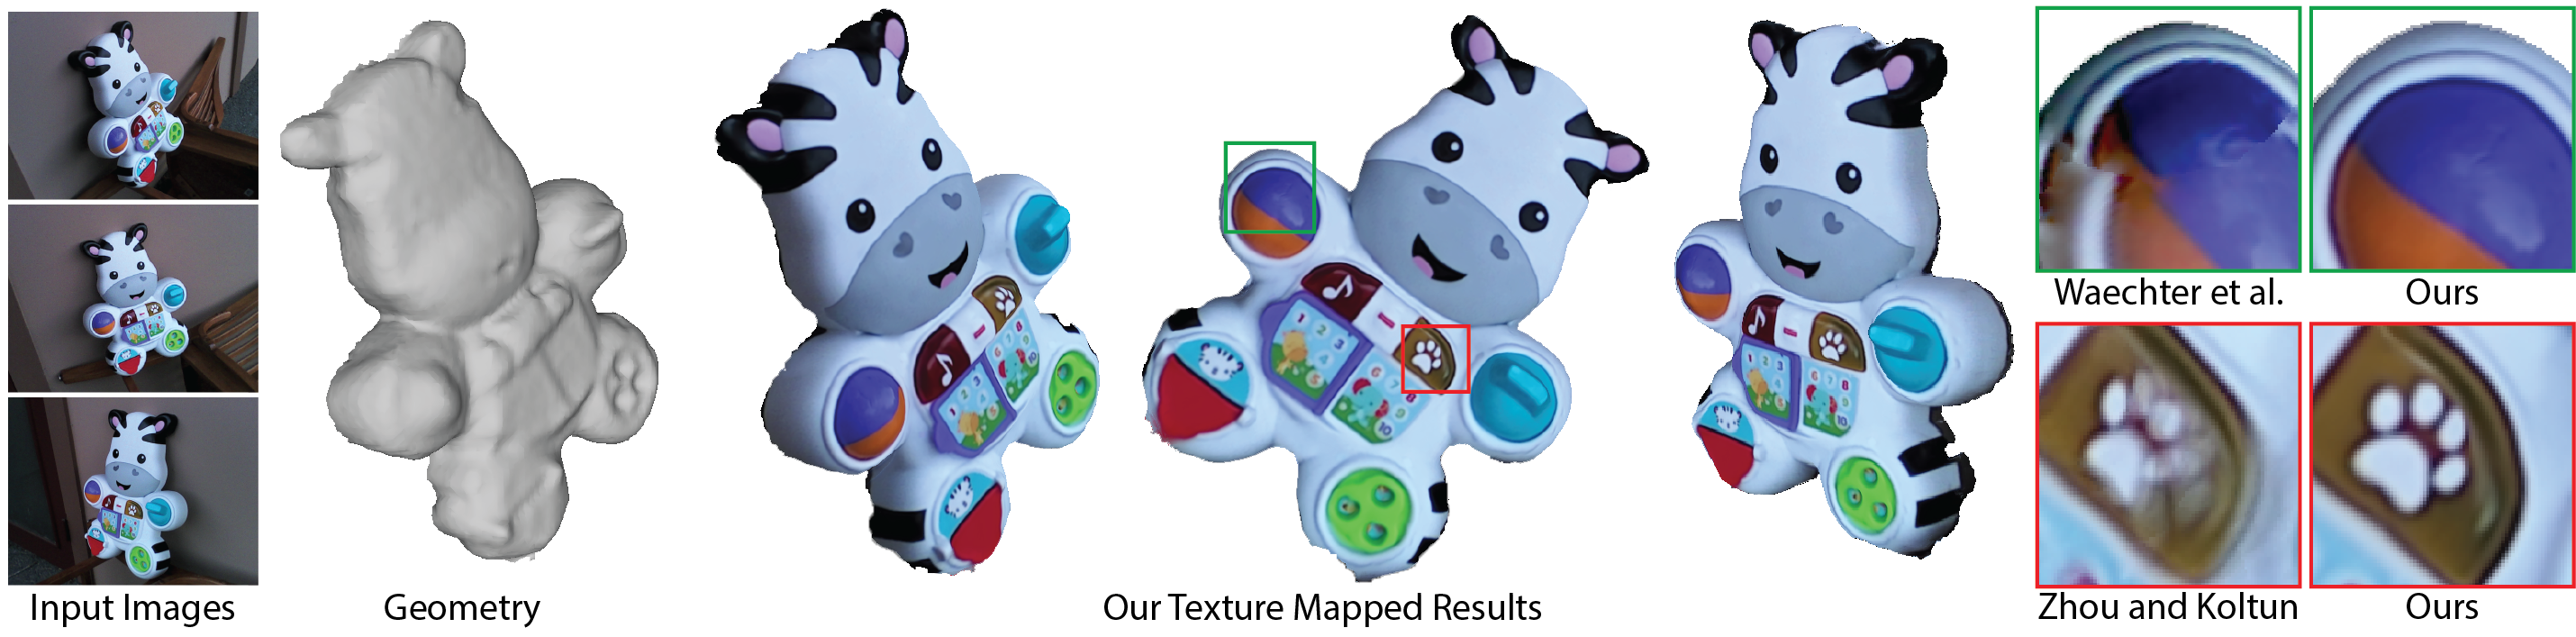 Patch-Based Optimization for Image-Based Texture Mapping on skin mapping, motion blur, function mapping, phong shading, mip mapping, alpha blending, character mapping, noise mapping, contour mapping, emotion mapping, flat shading, smooth shading, heat mapping, value mapping, text mapping, uv mapping, perspective correction, ray tracing, pressure mapping, landscape mapping, global illumination, bilinear filtering, bump mapping, color mapping, flow mapping, food mapping, tone mapping, gouraud shading, shadow mapping,